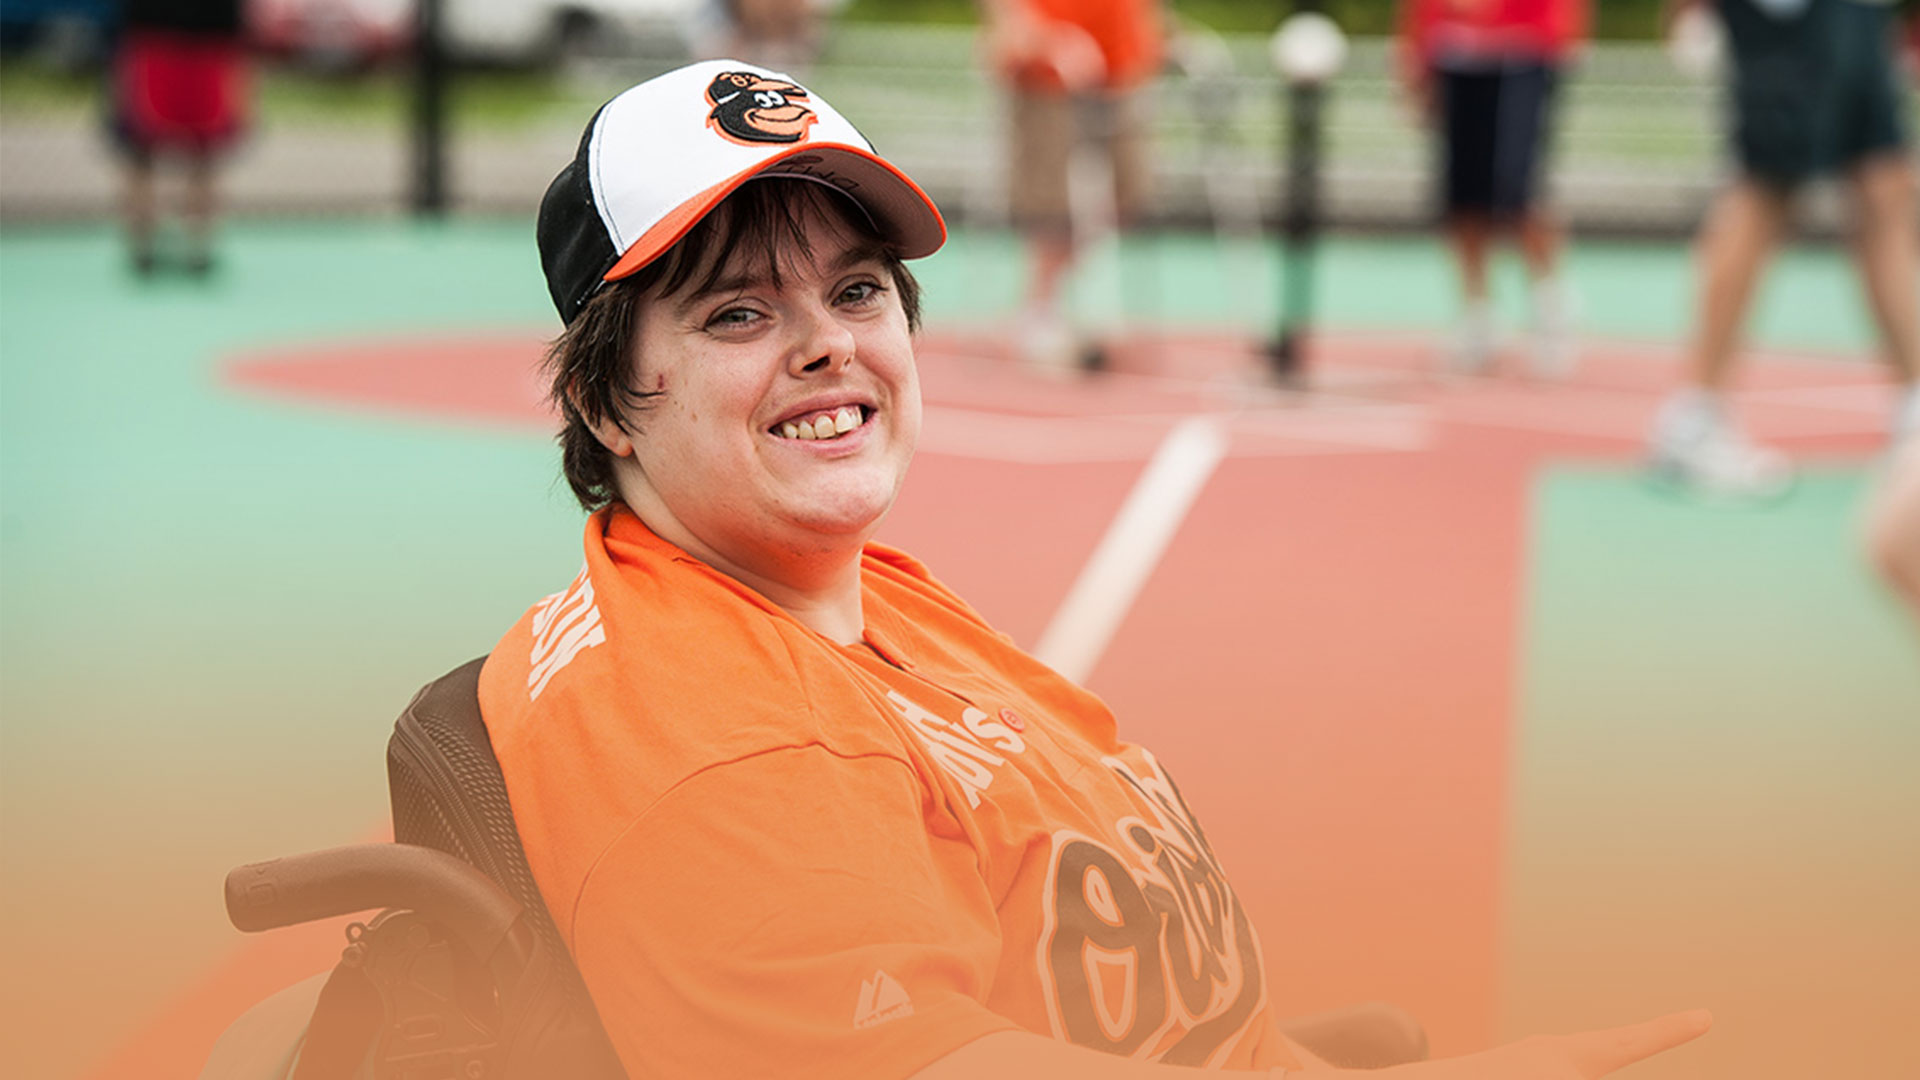 Miracle League Baseball Player on Field